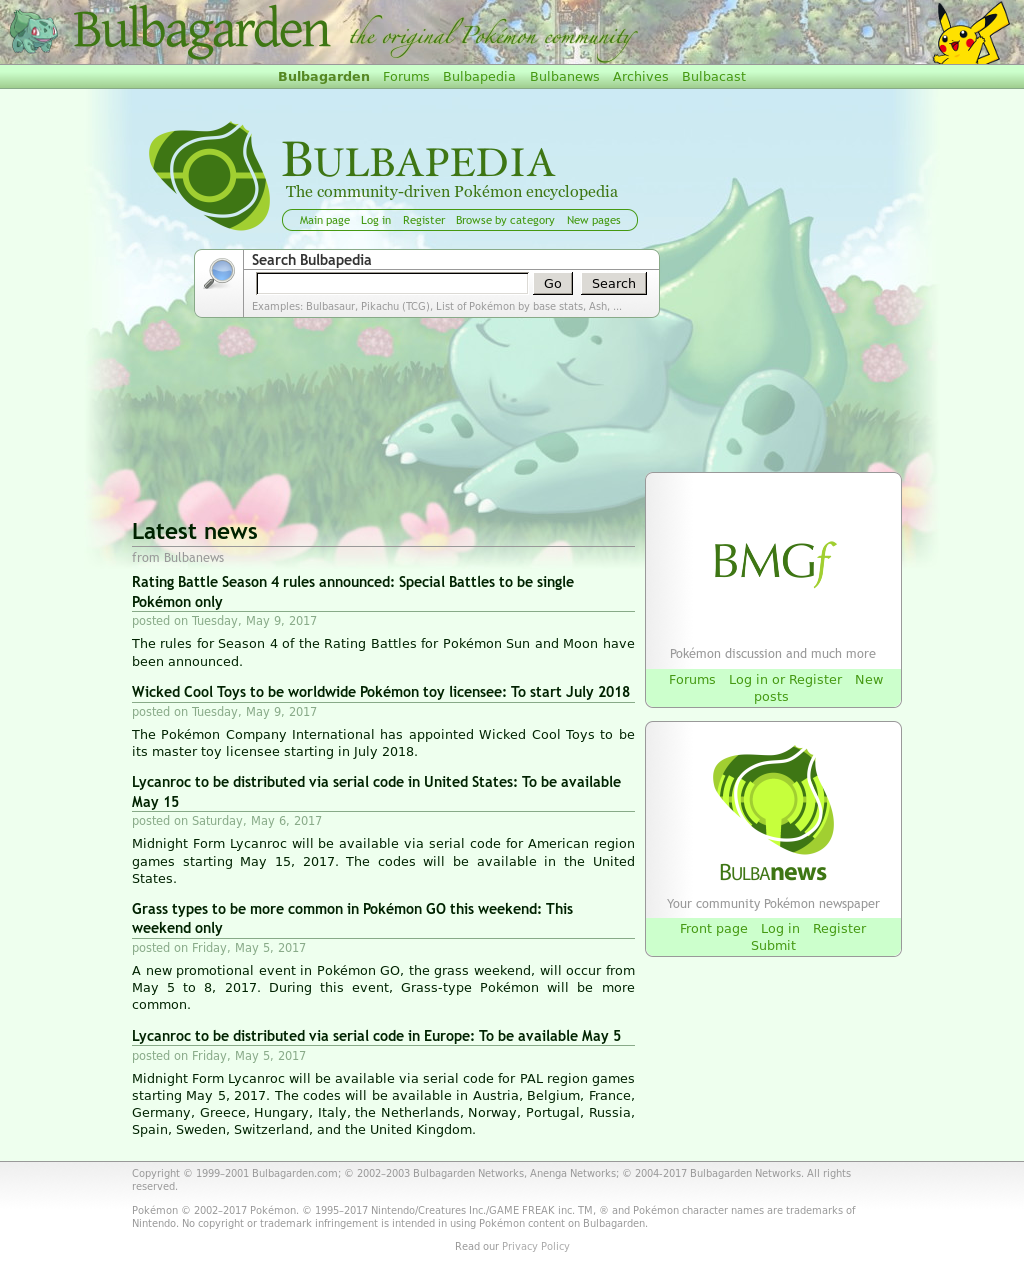 Bulbagarden Networks Competitors, Revenue and Employees - Owler